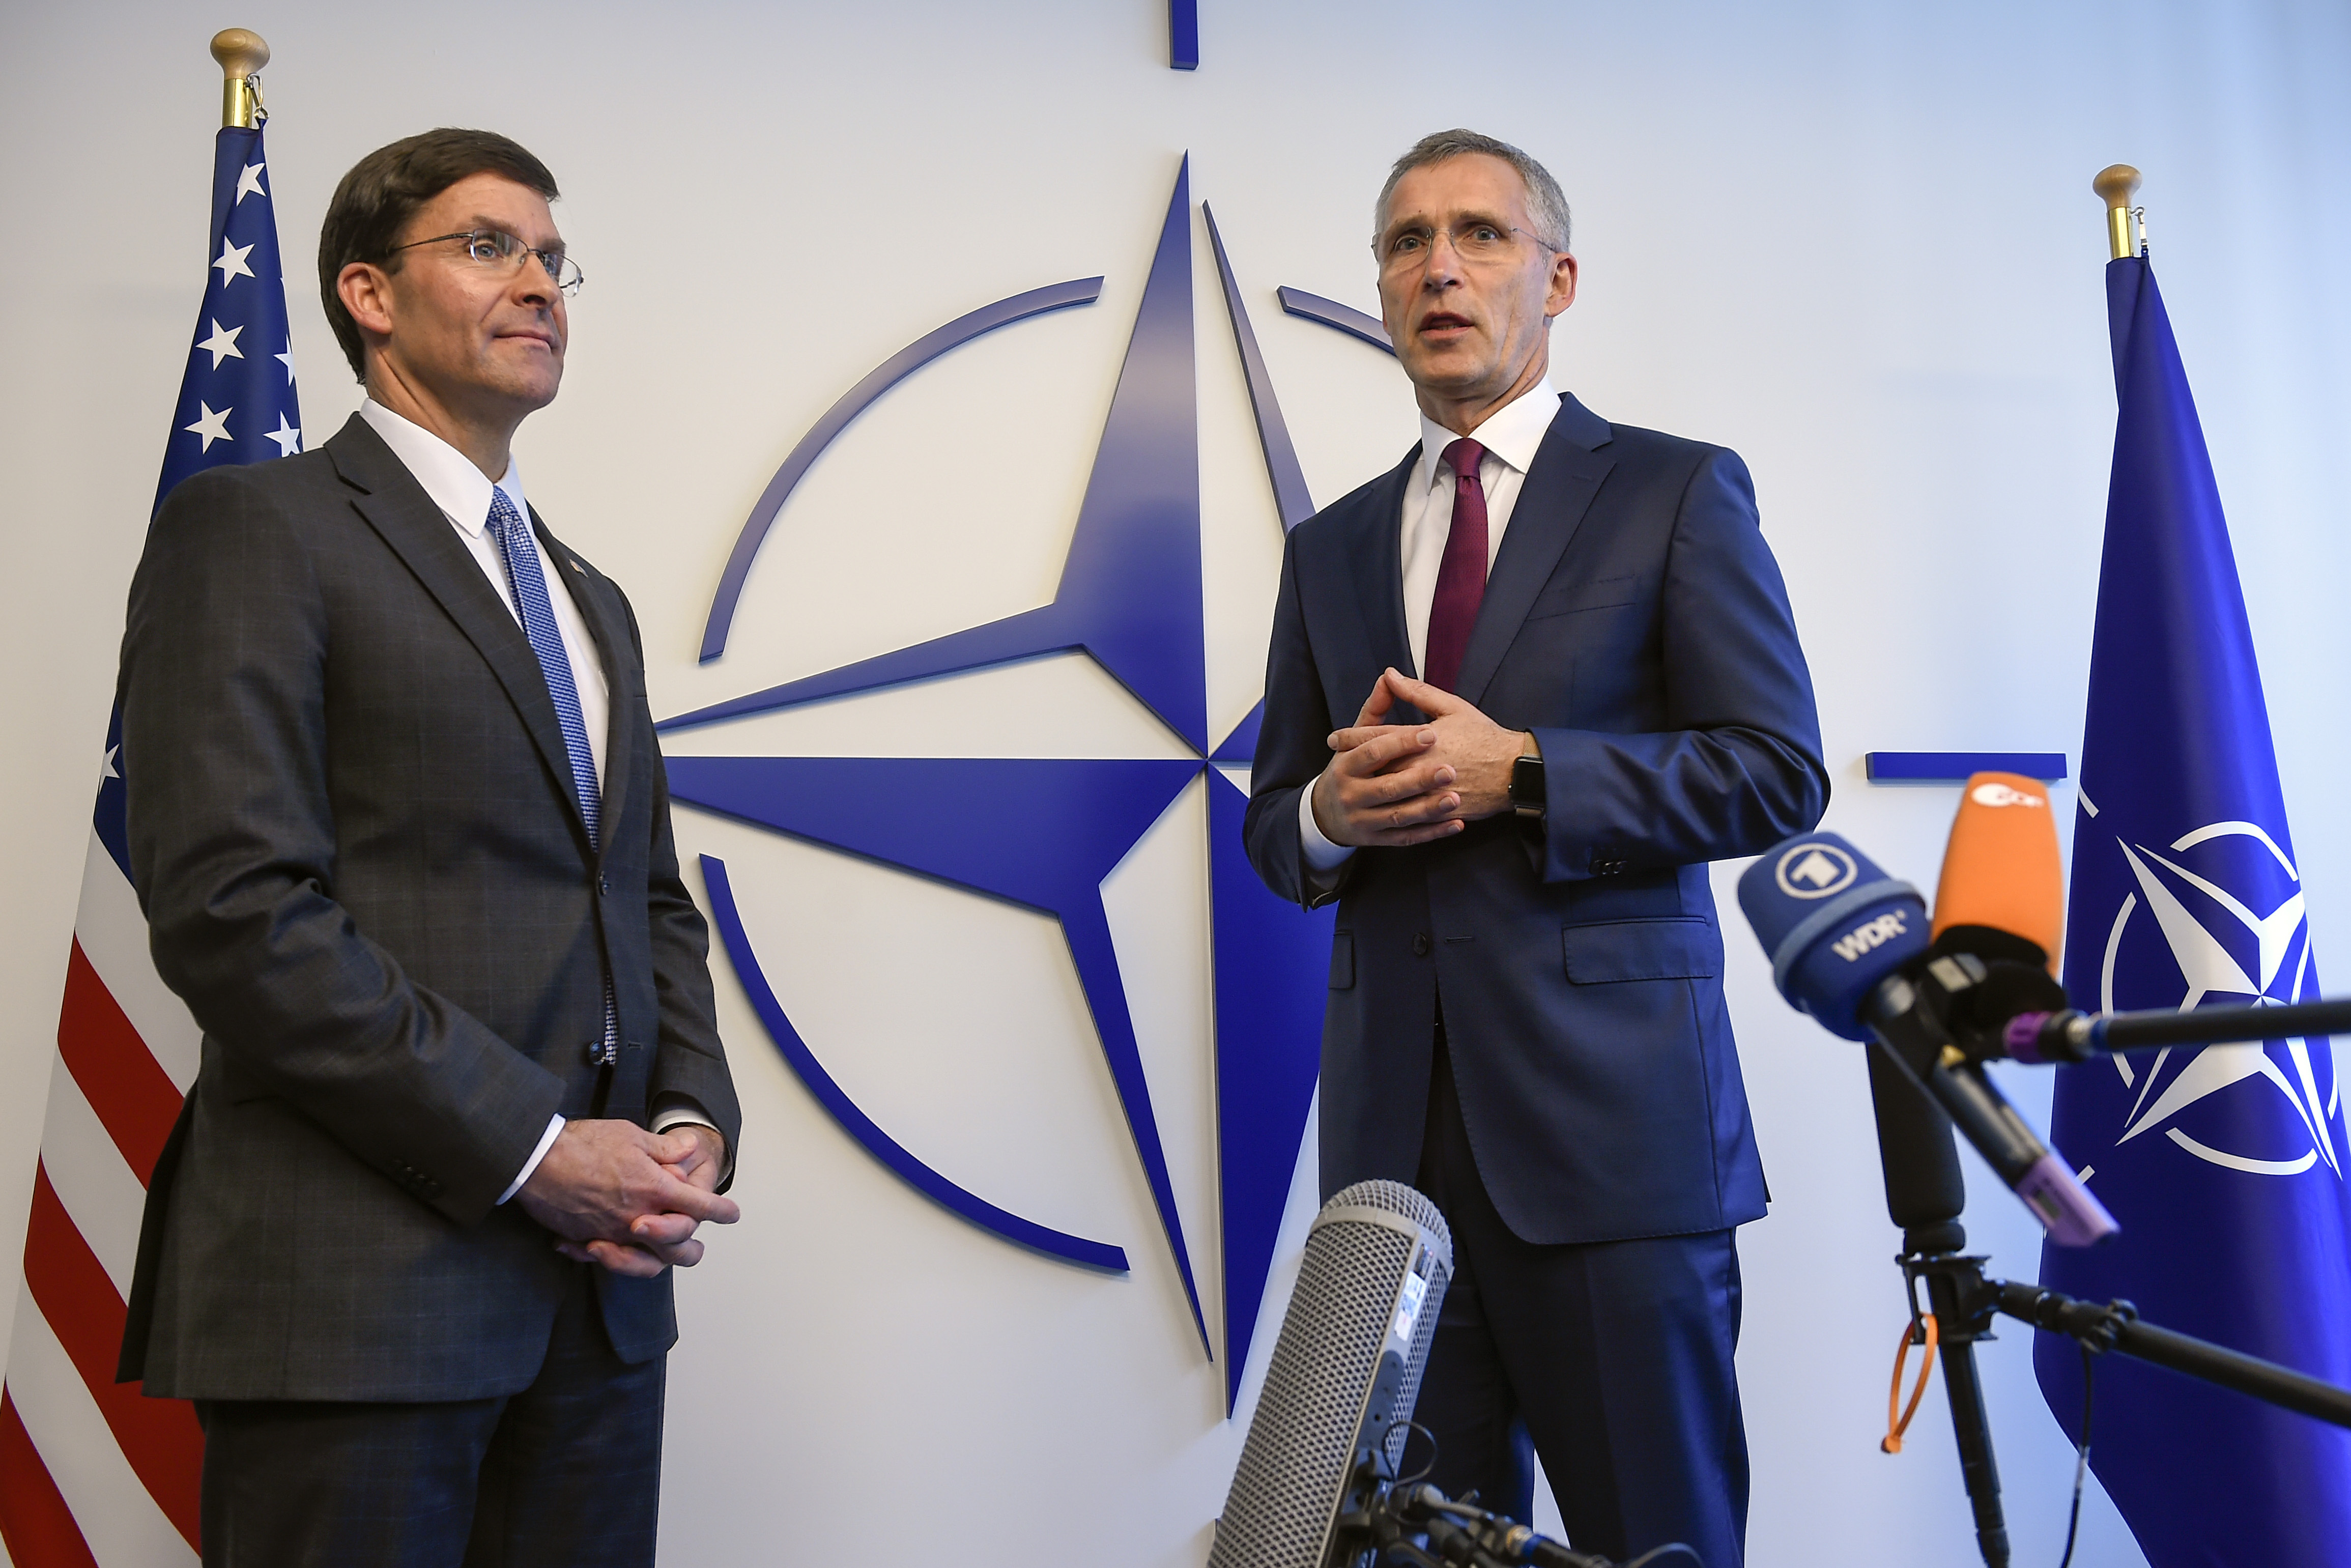 NATO weighs boost to air defenses over Russia missile system